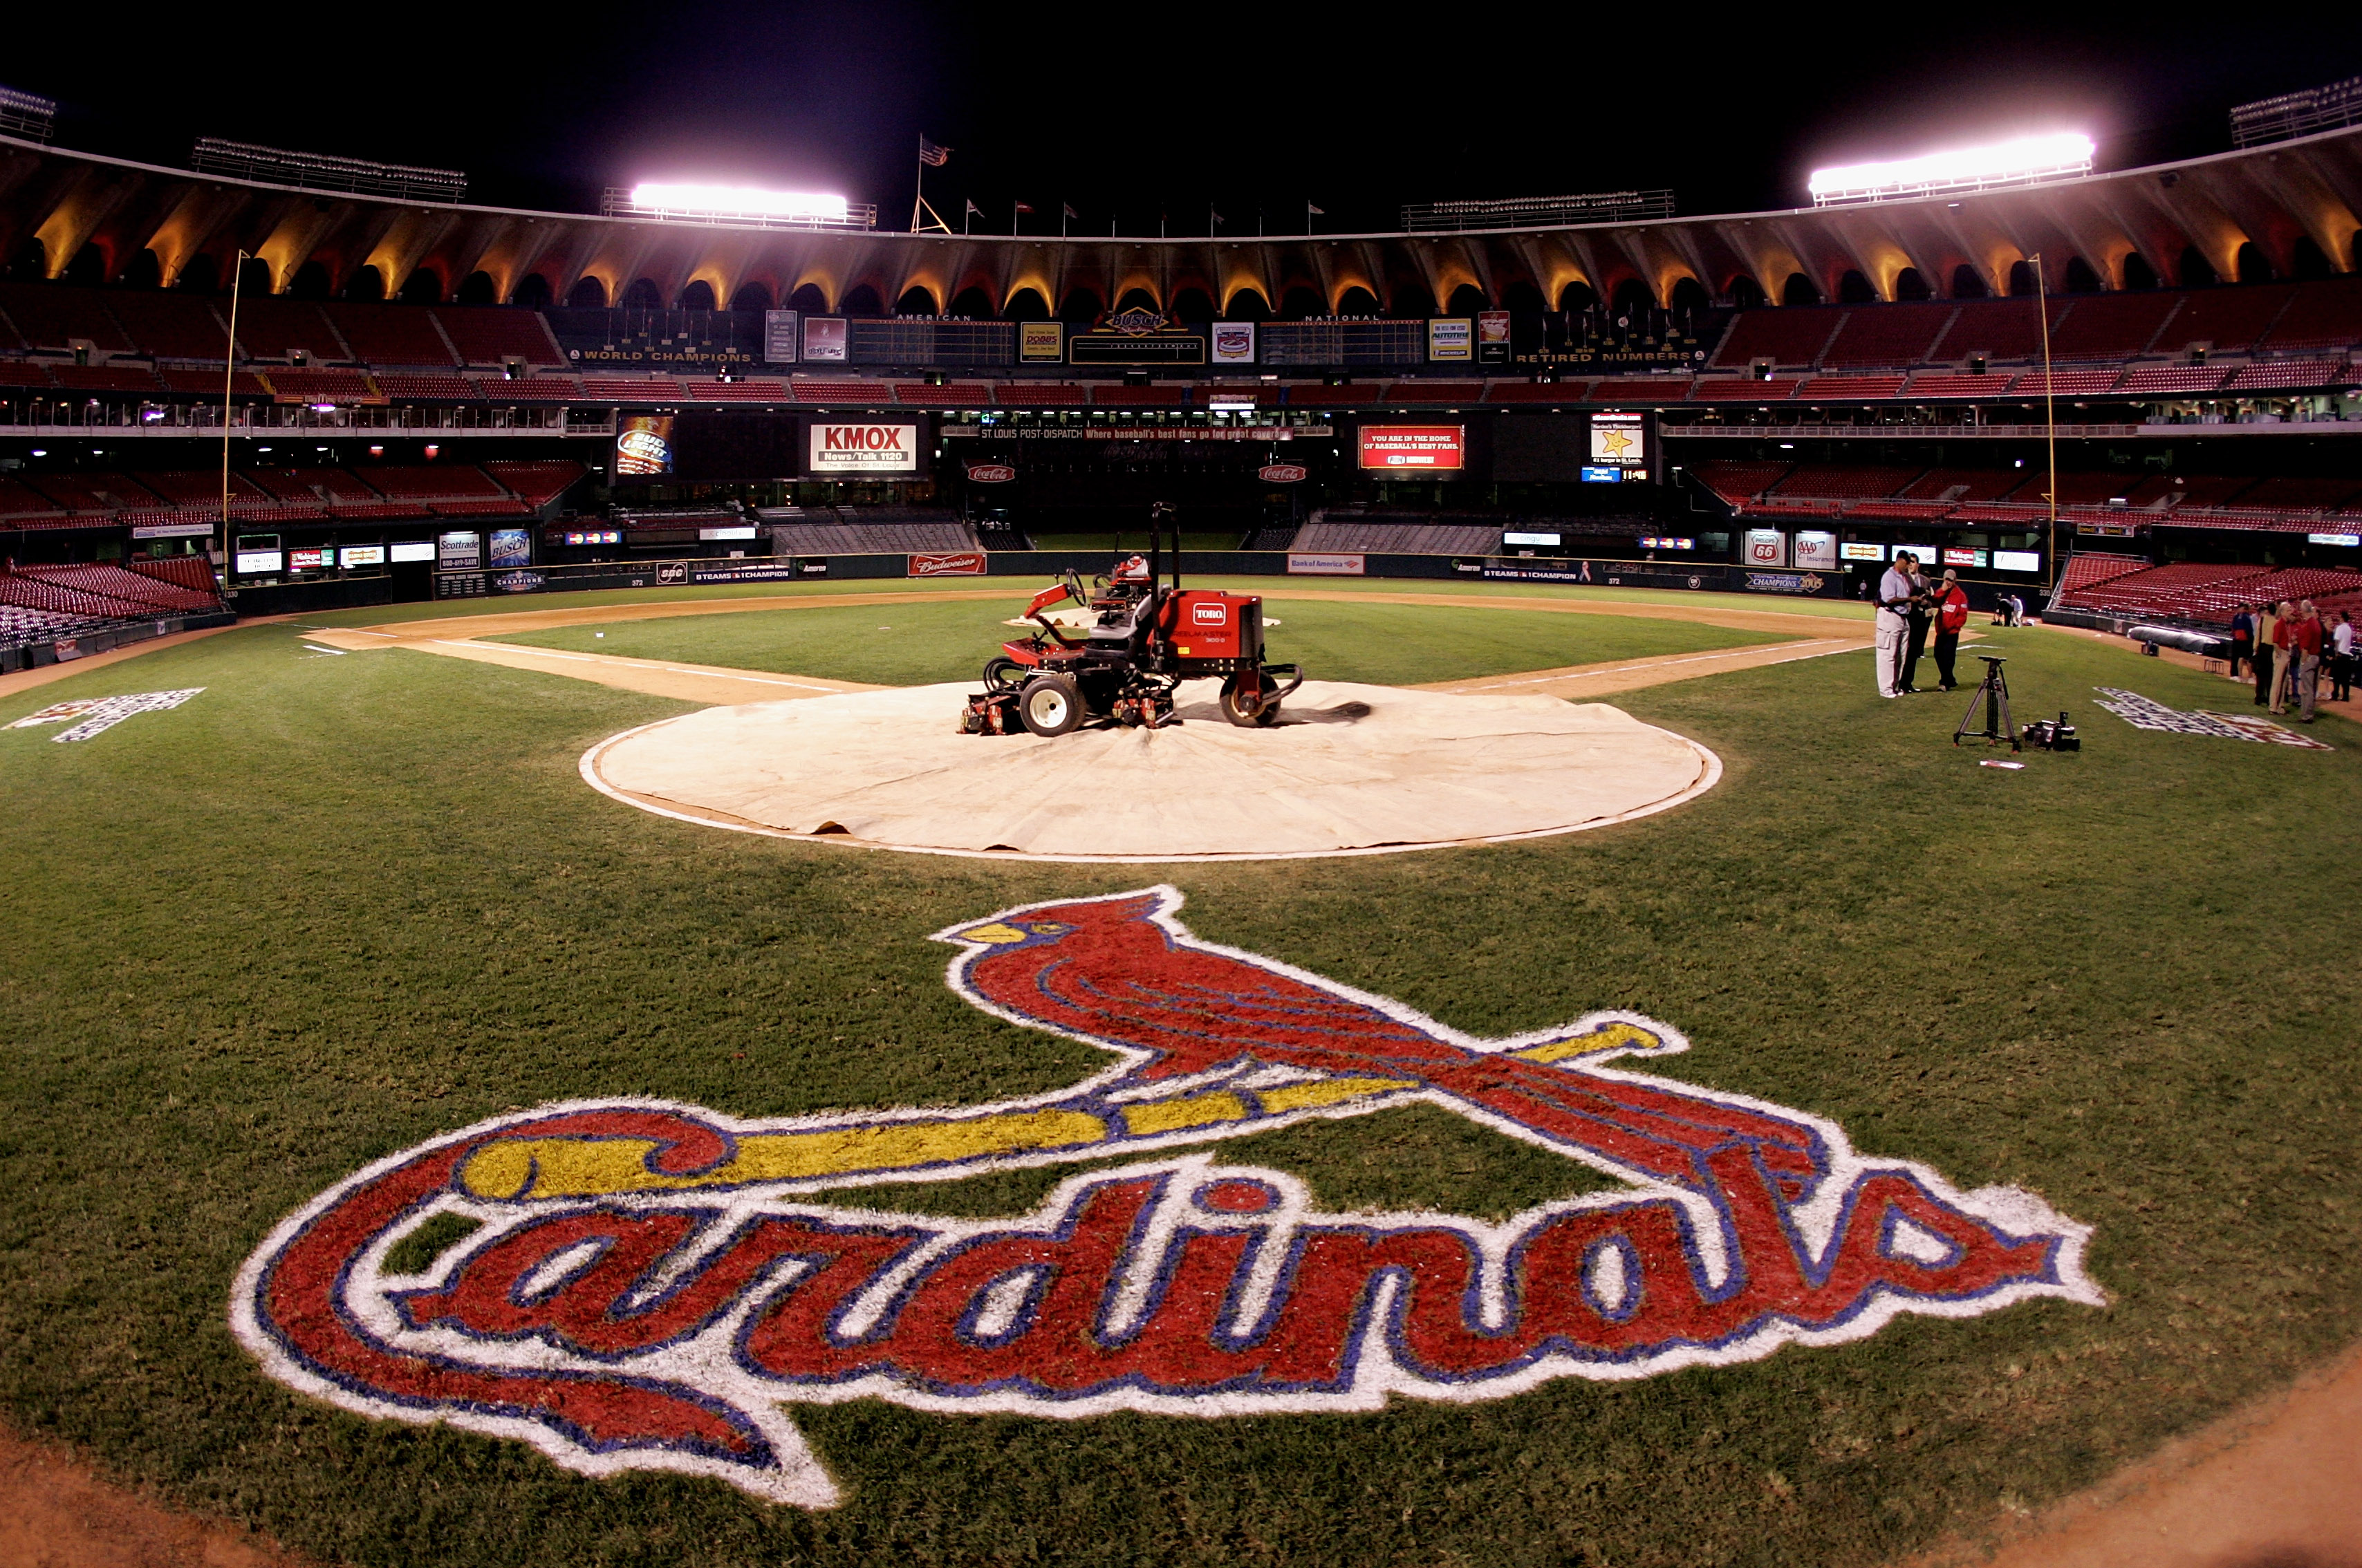 Image of the Cardinals' home field